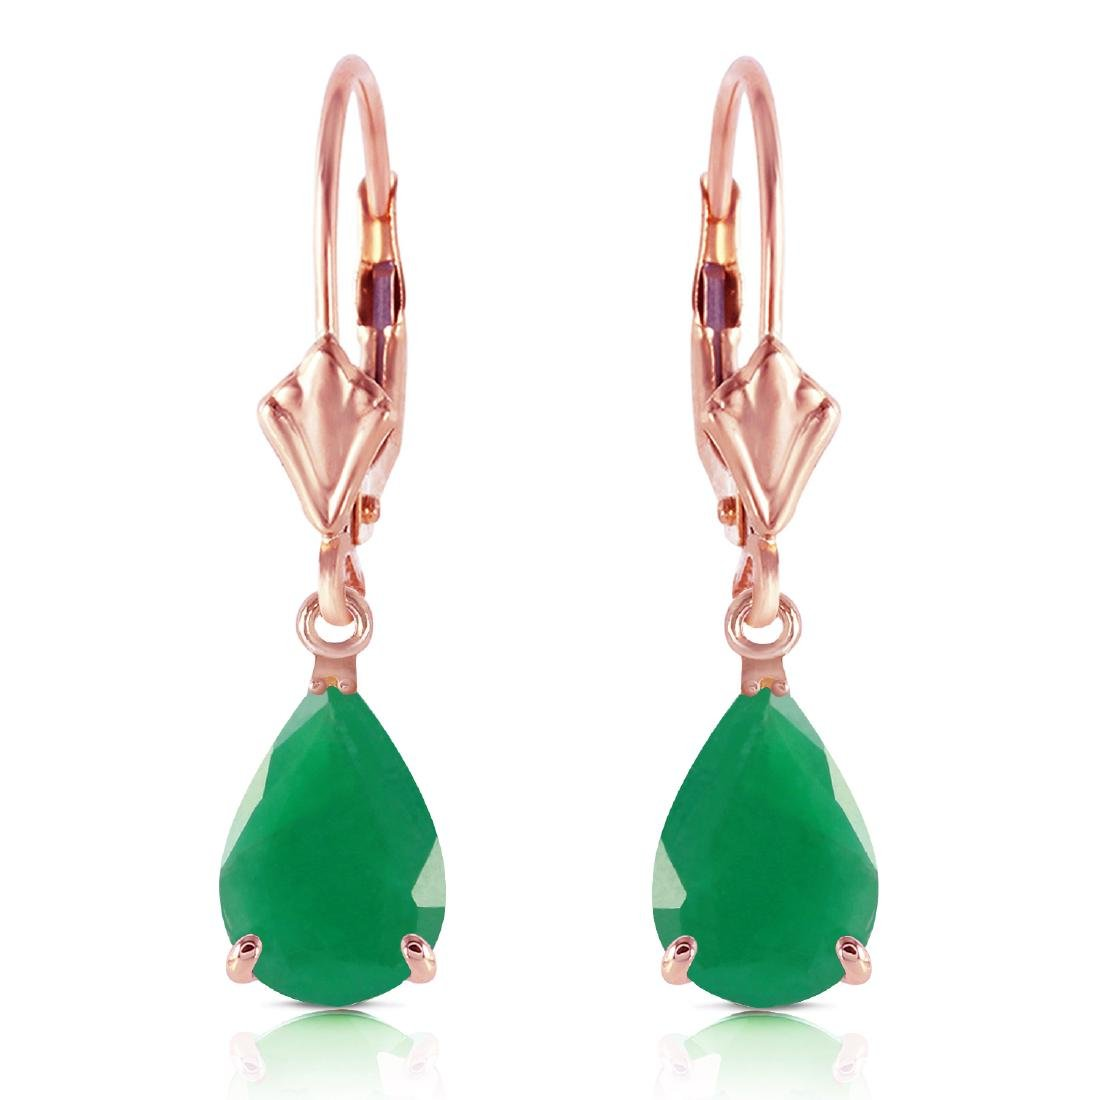 Genuine 2 ctw Emerald Earrings Jewelry 14KT Rose Gold -